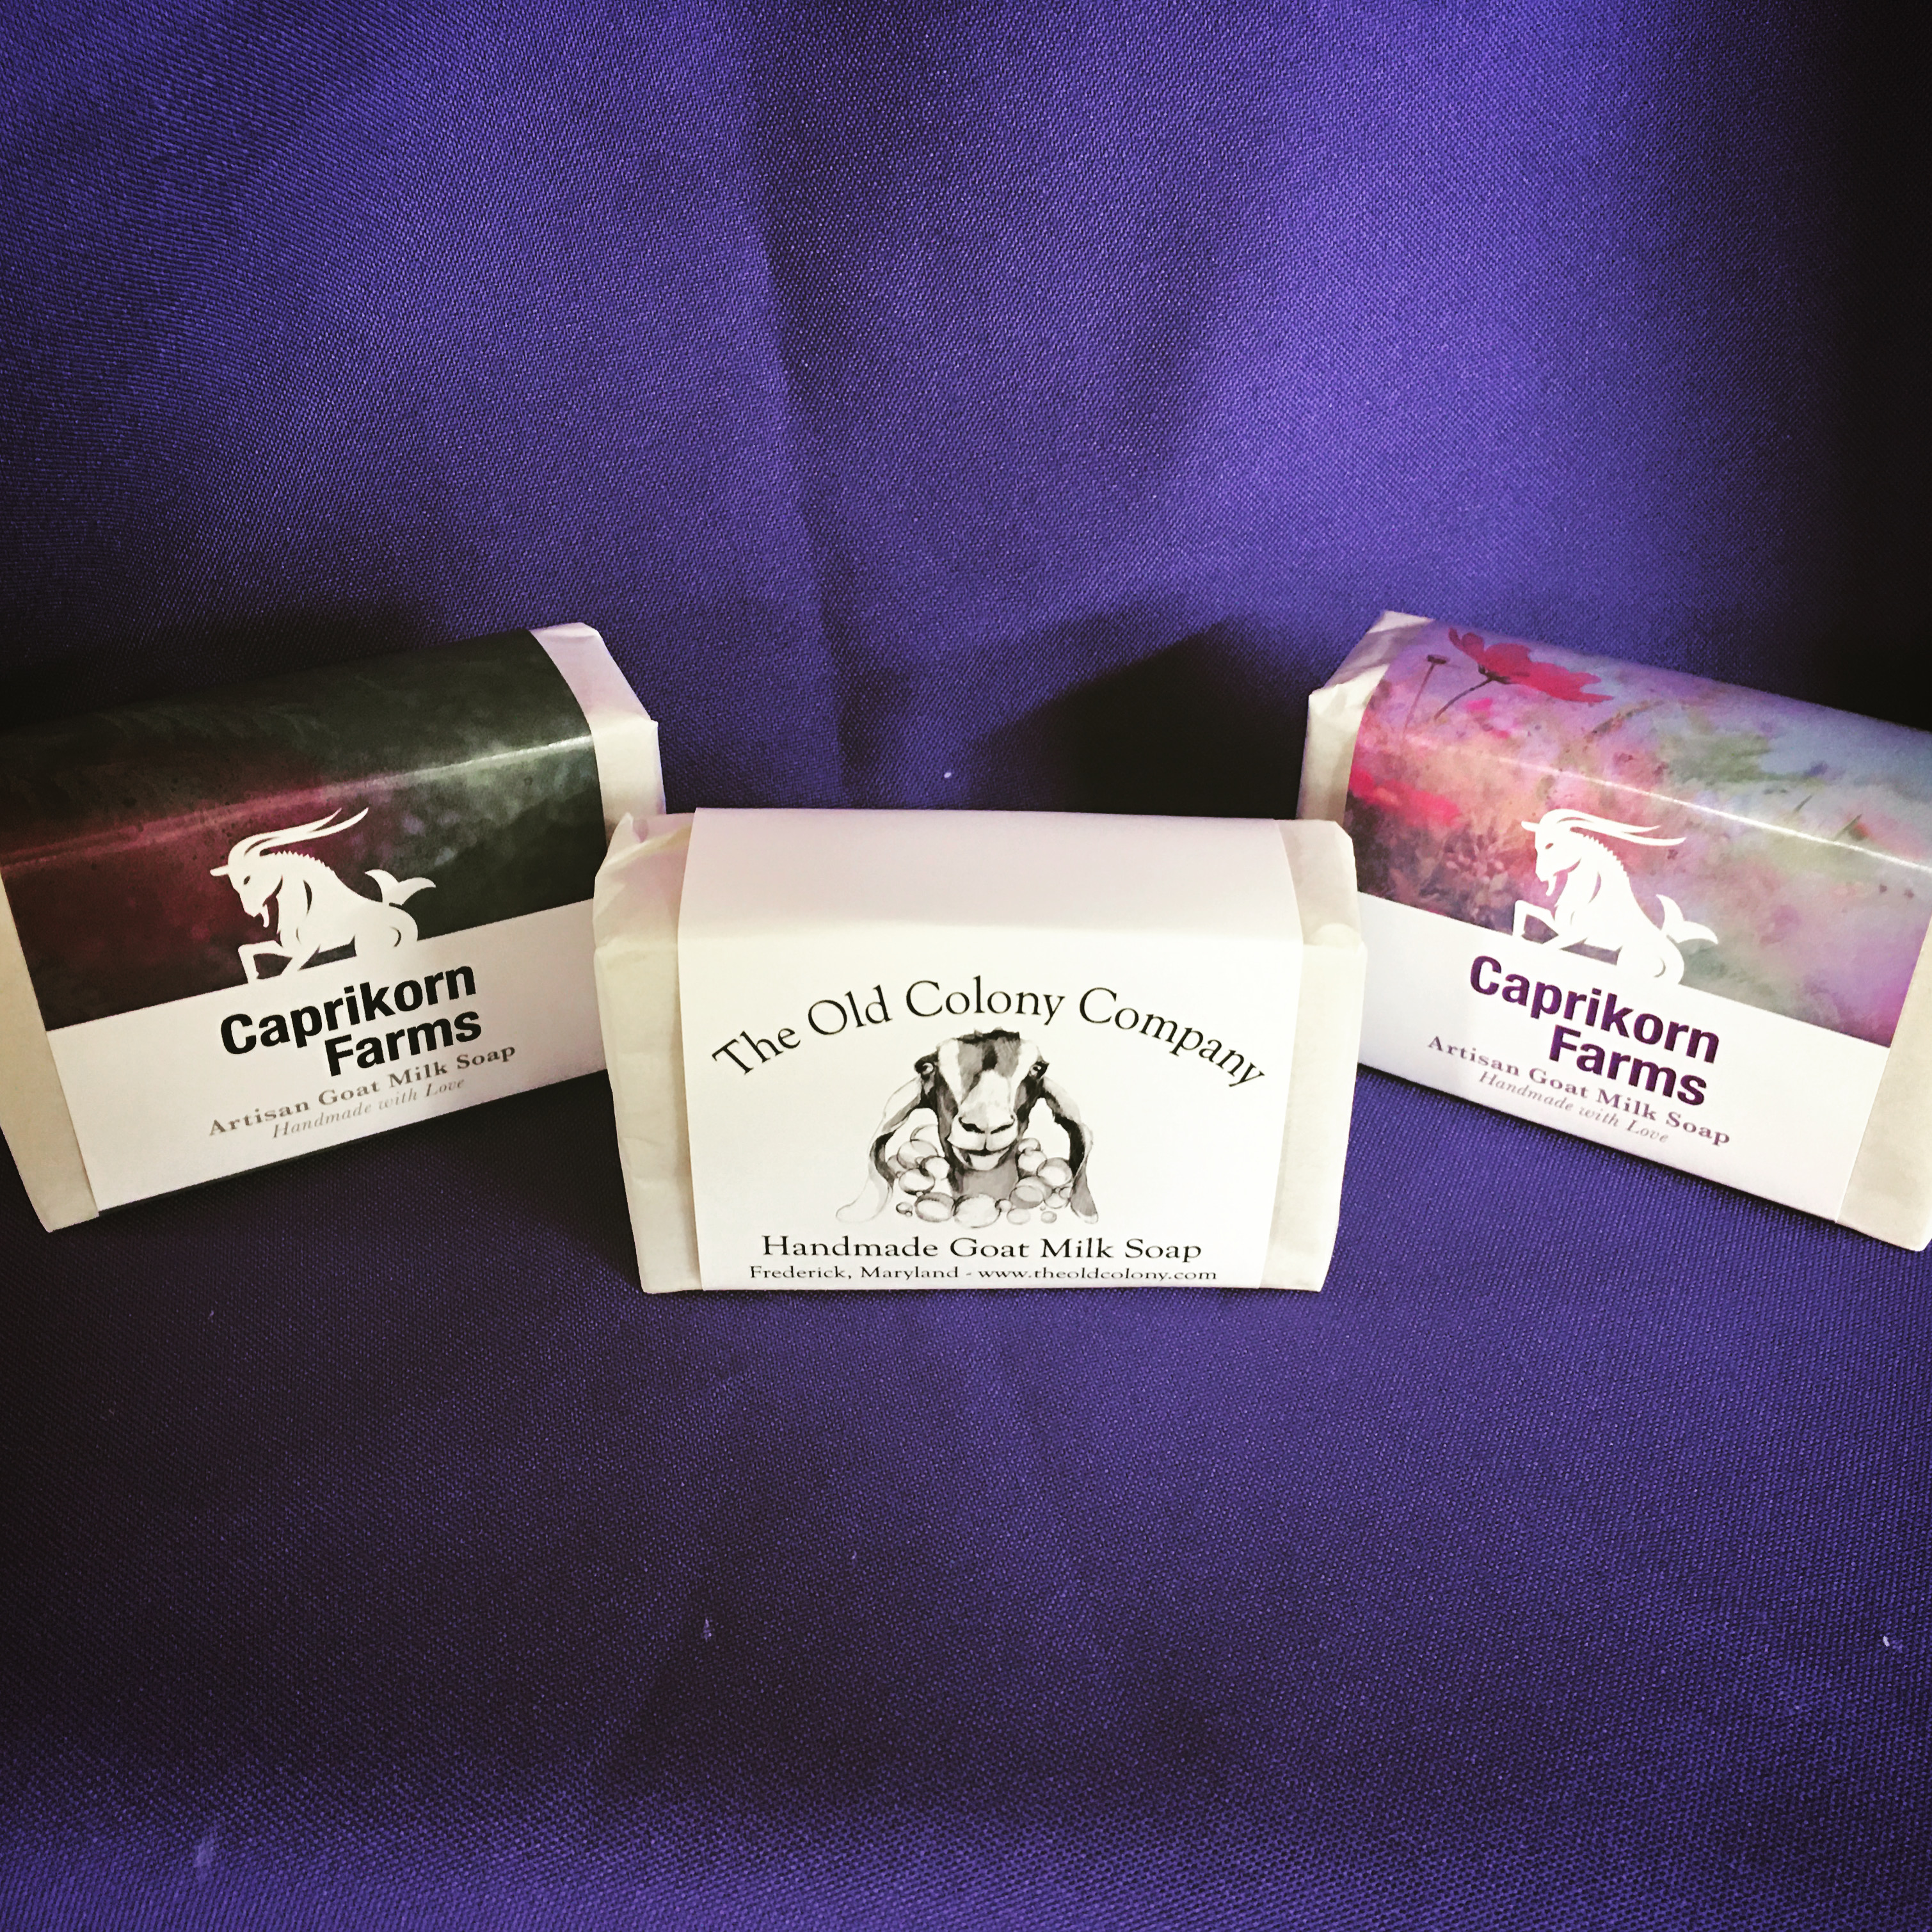 Goat Milk Soap - It's all about the goat milk and LOVE!